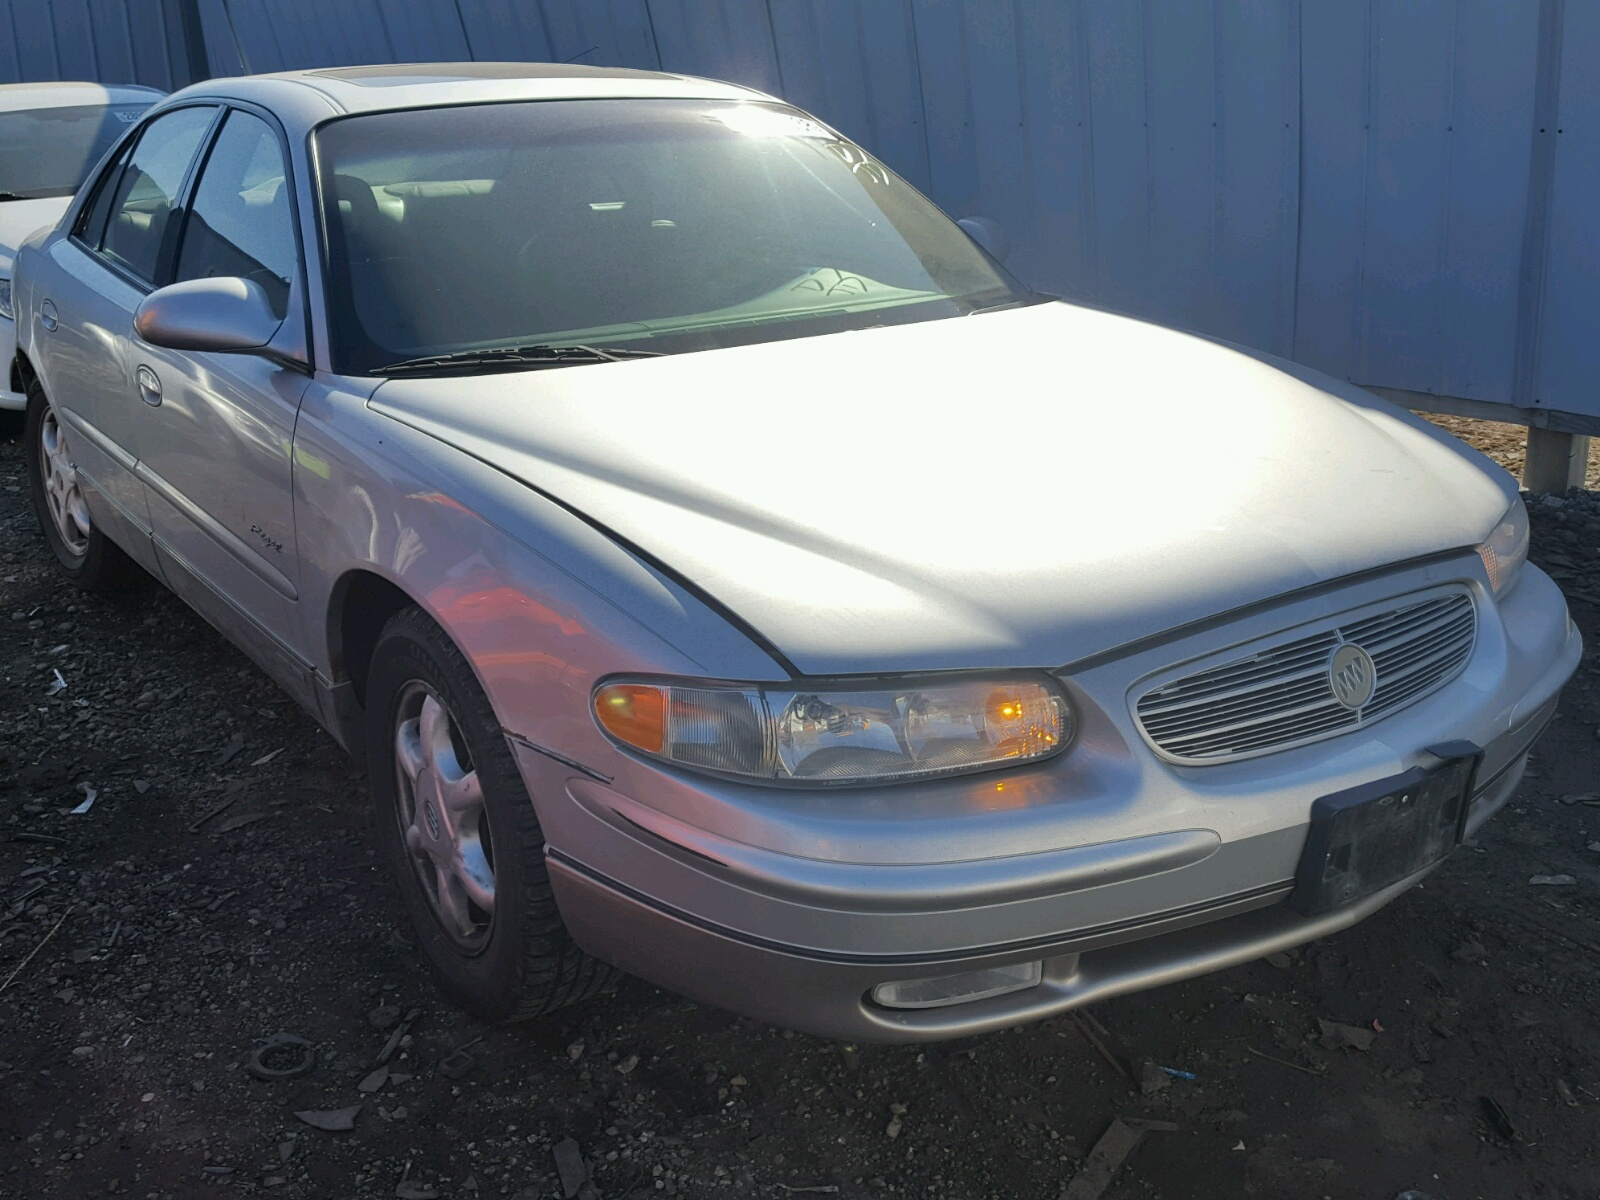 2g4wb55k111141723 2001 silver buick regal ls on sale in wi 2g4wb55k111141723 2001 buick regal ls 38l left view publicscrutiny Choice Image